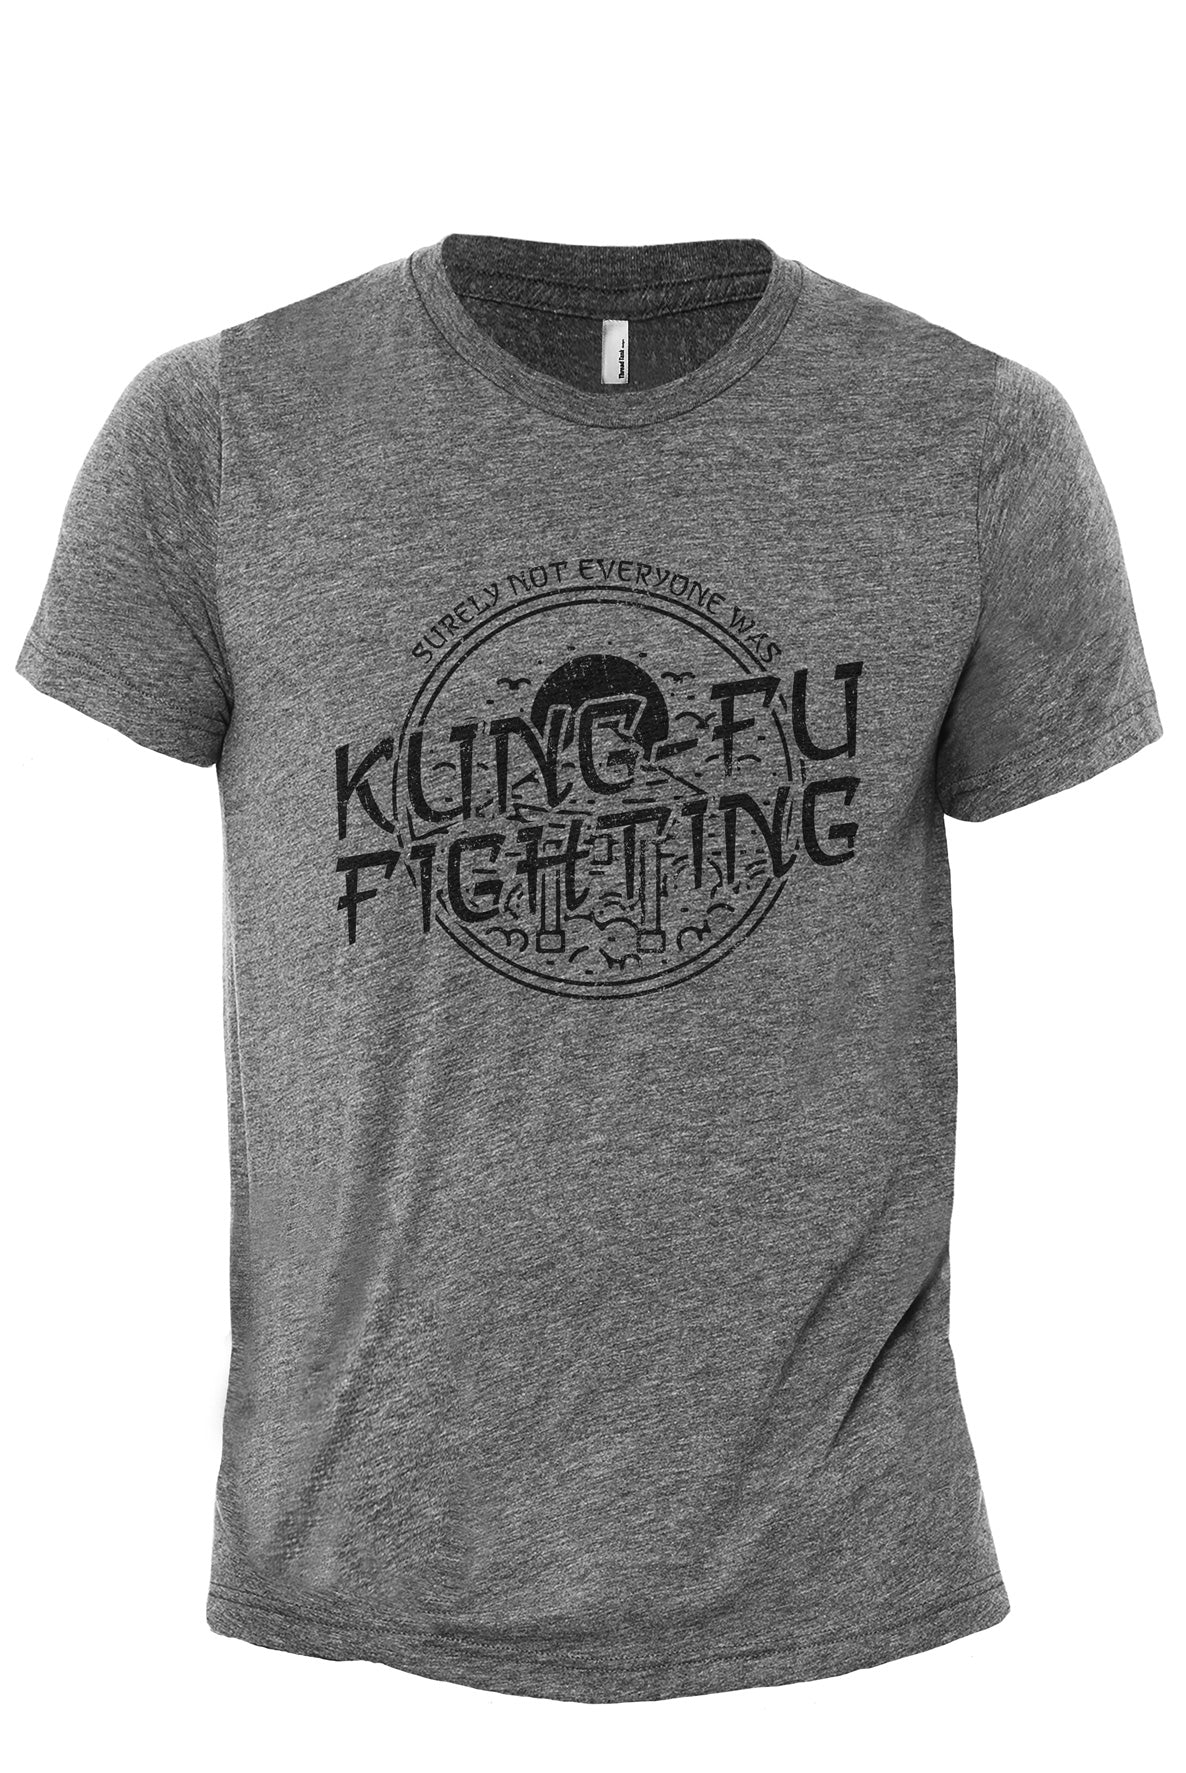 Surely Not Everyone Was Kung Fu Fighting Heather Grey Printed Graphic Men's Crew T-Shirt Tee